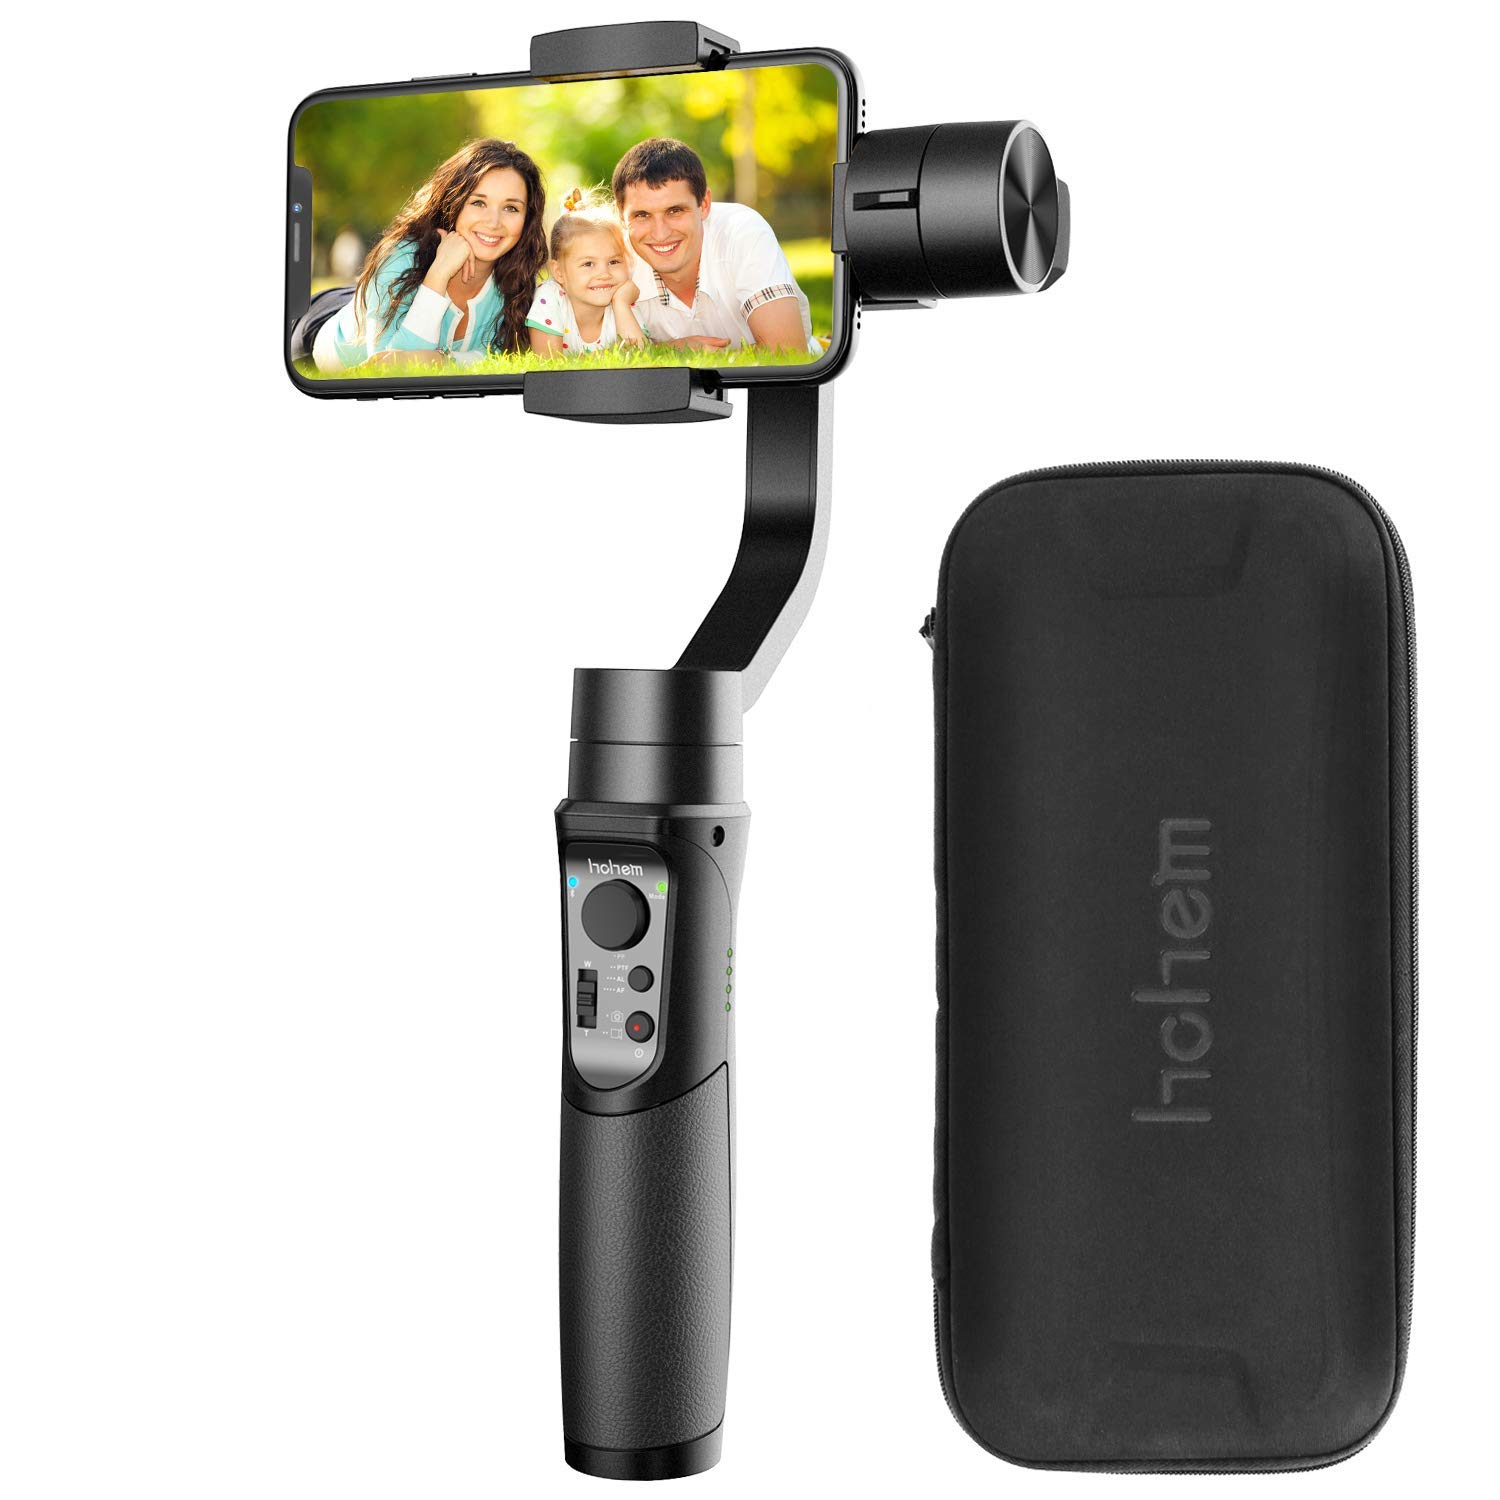 Hohem Smartphone Gimbal 3-Axis Stabilizer Handheld Gimble Time Lapse Expert Stabilizer w/Focus Pull & Zoom Face Tracking 12h Runtime,Max Playload 210g (iSteady Mobile)